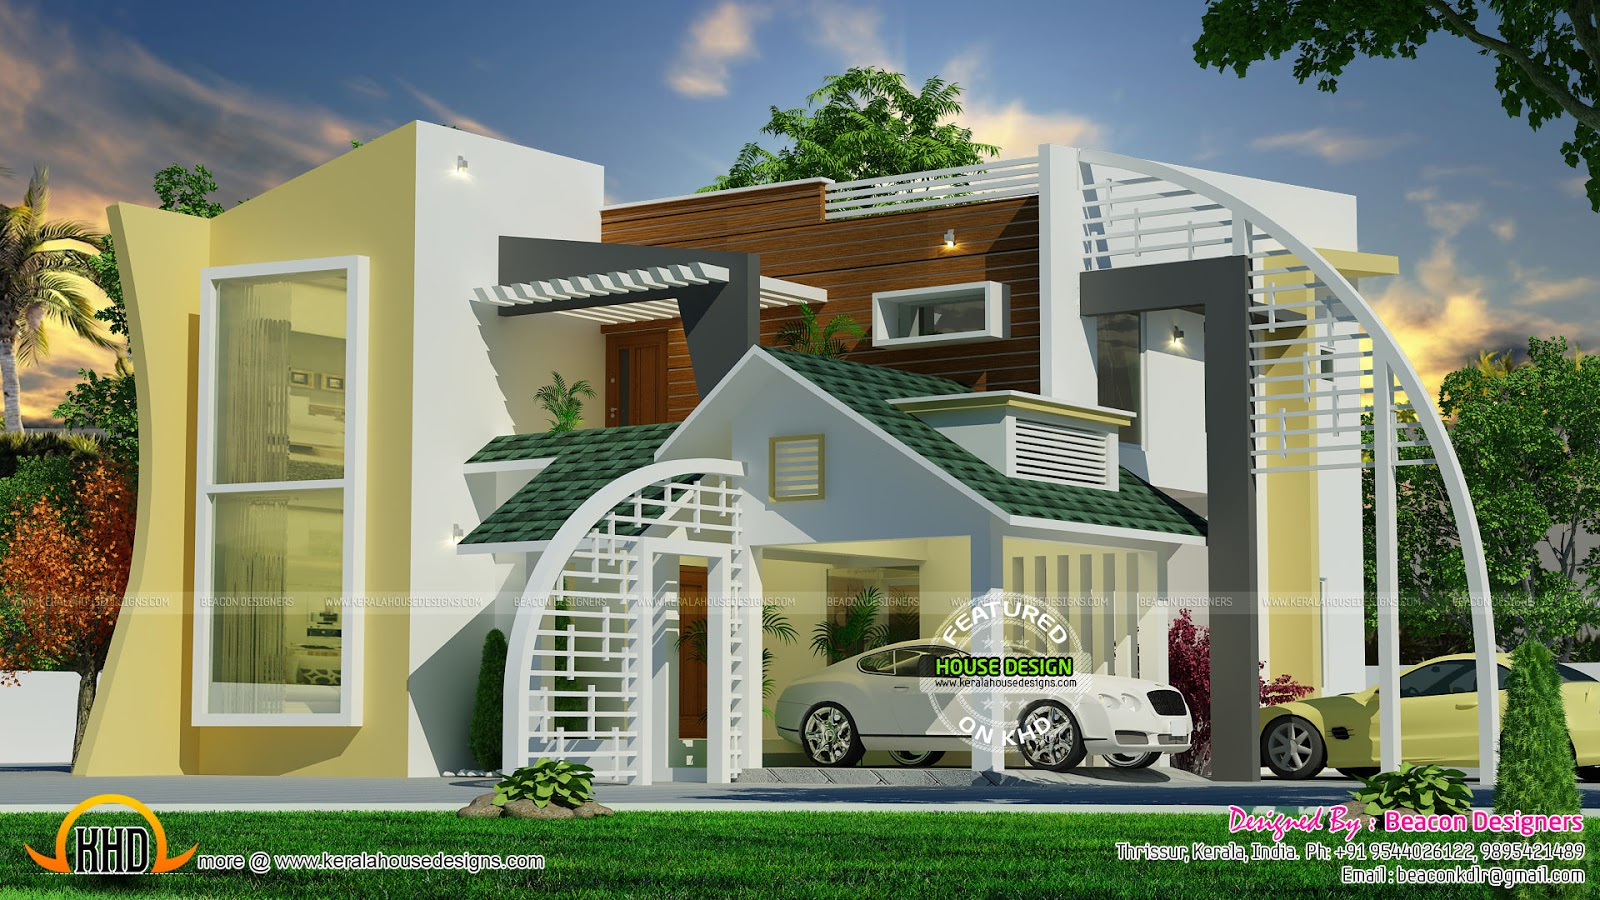 Unique ultra modern contemporary home kerala home design and floor plans for Ultra modern contemporary house plans